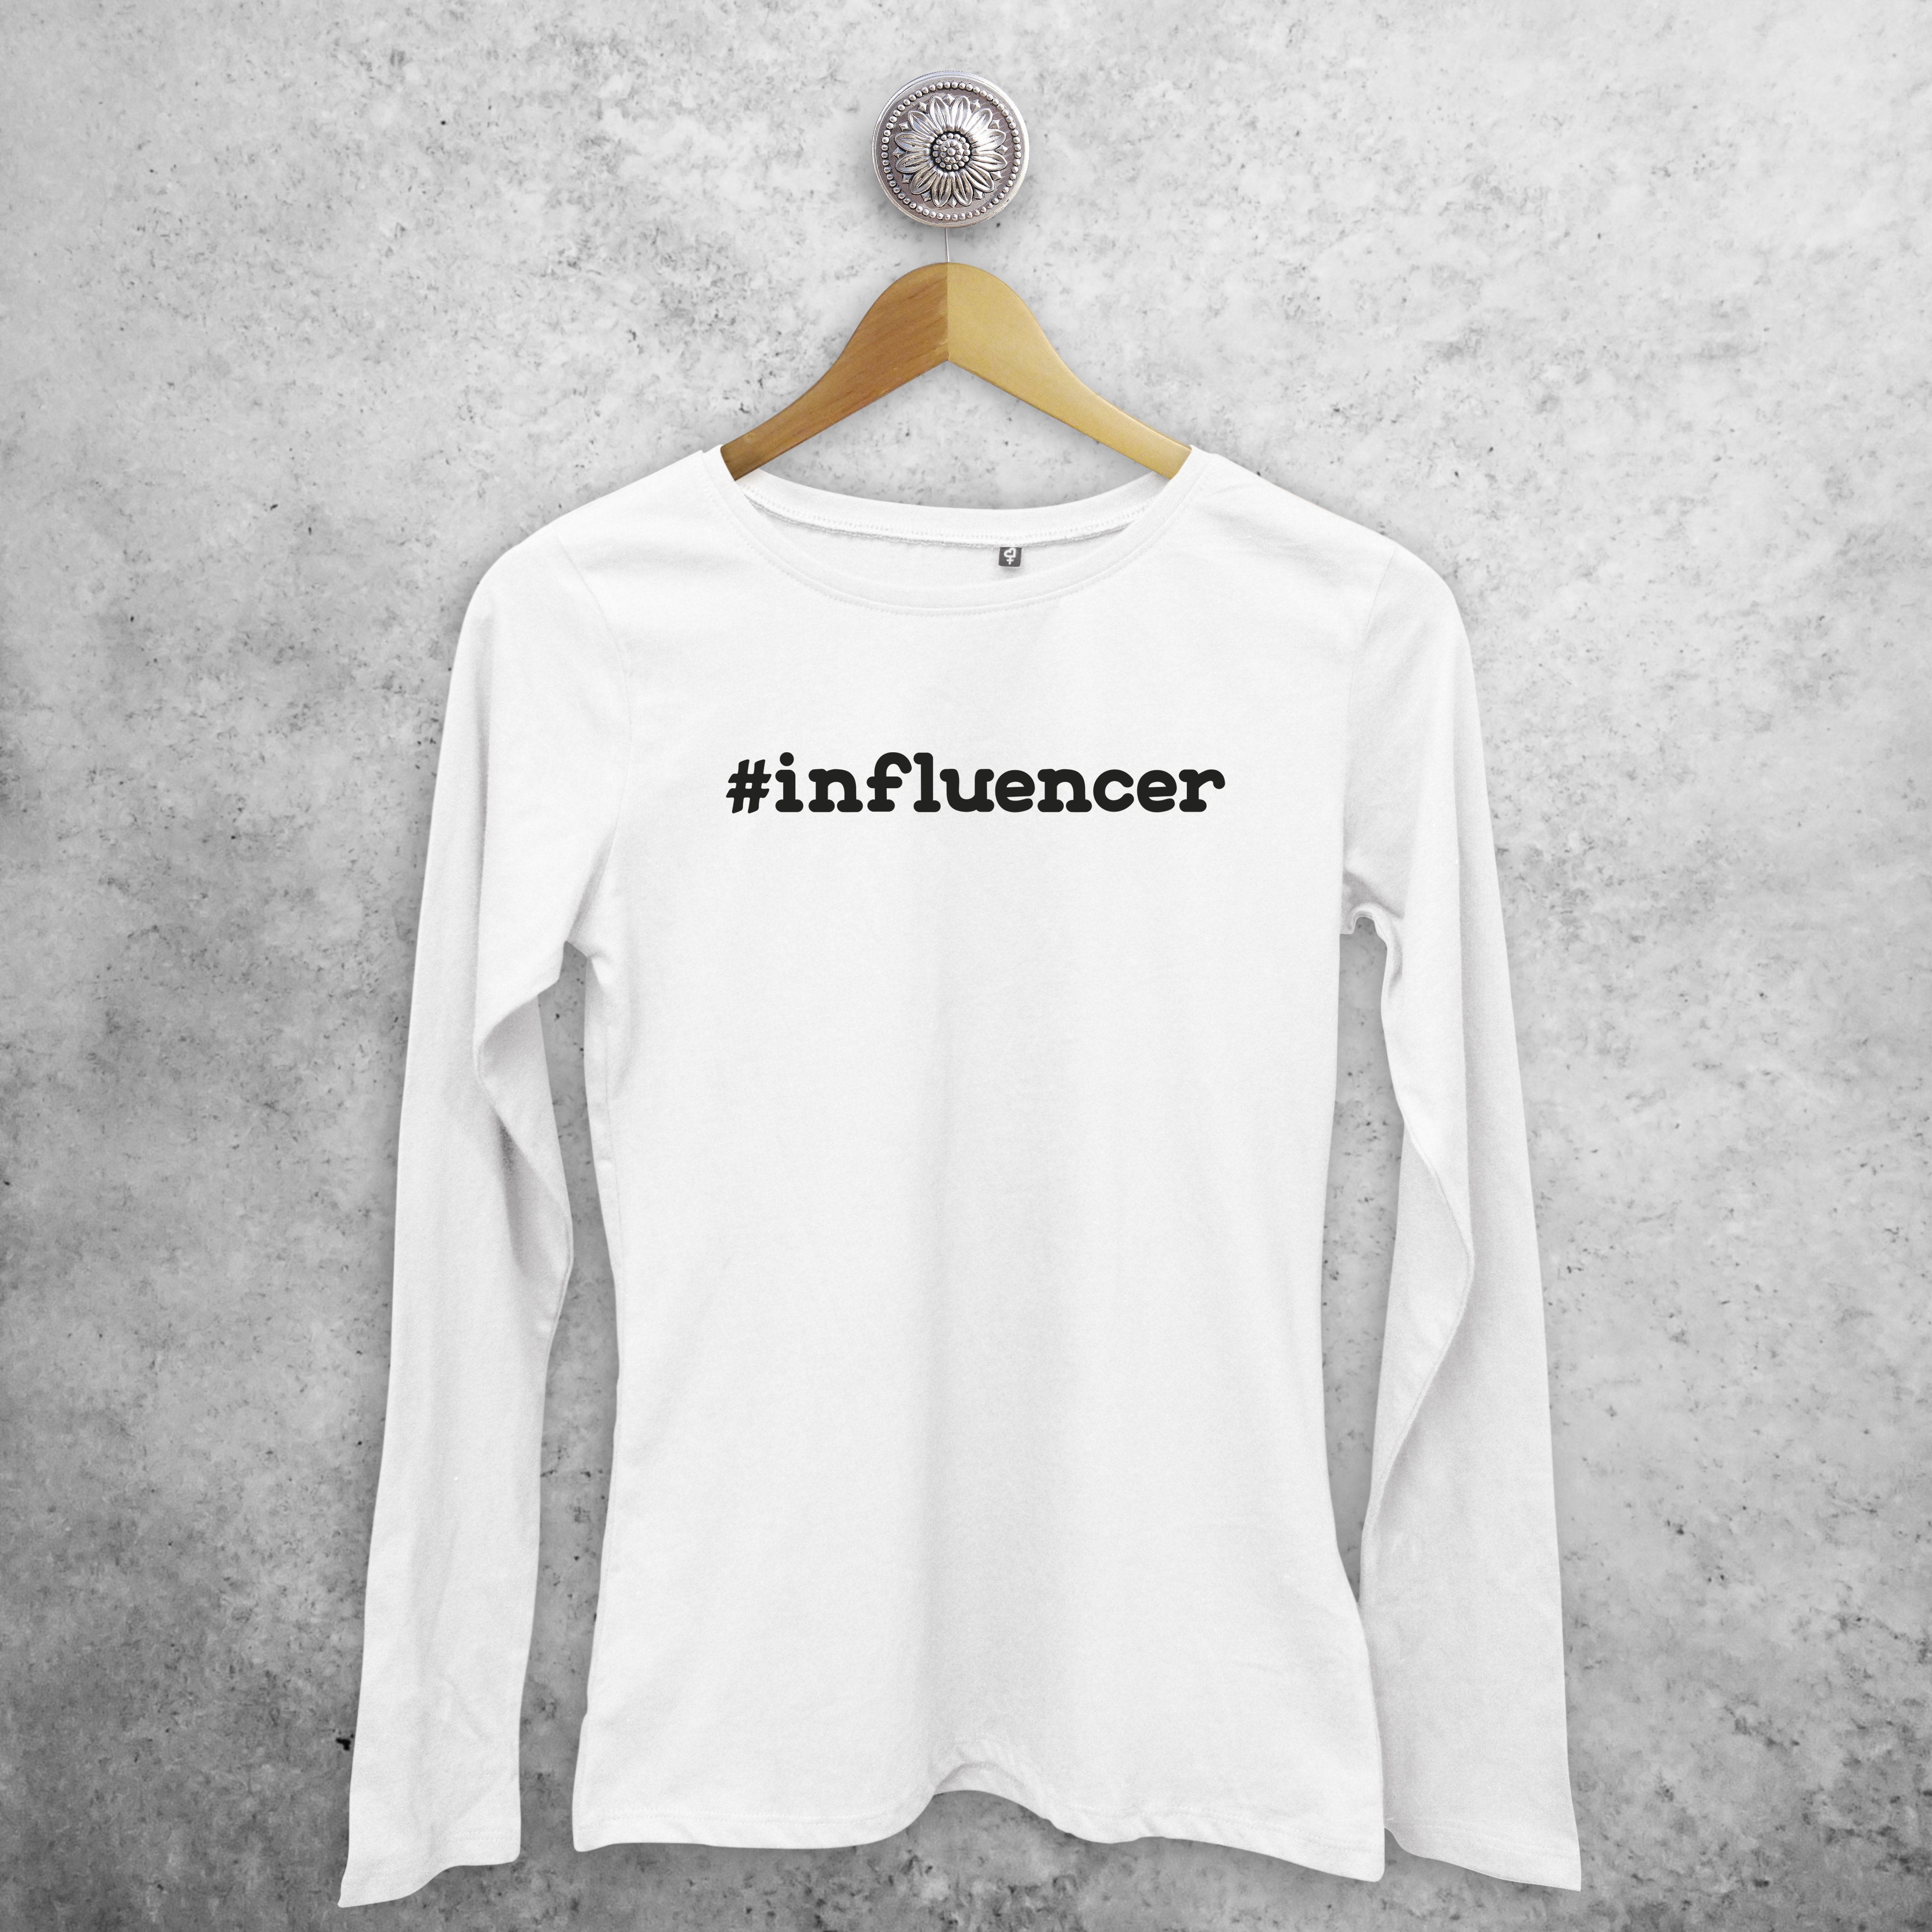 Adult shirt with long sleeves, with '#influencer' print by KMLeon.